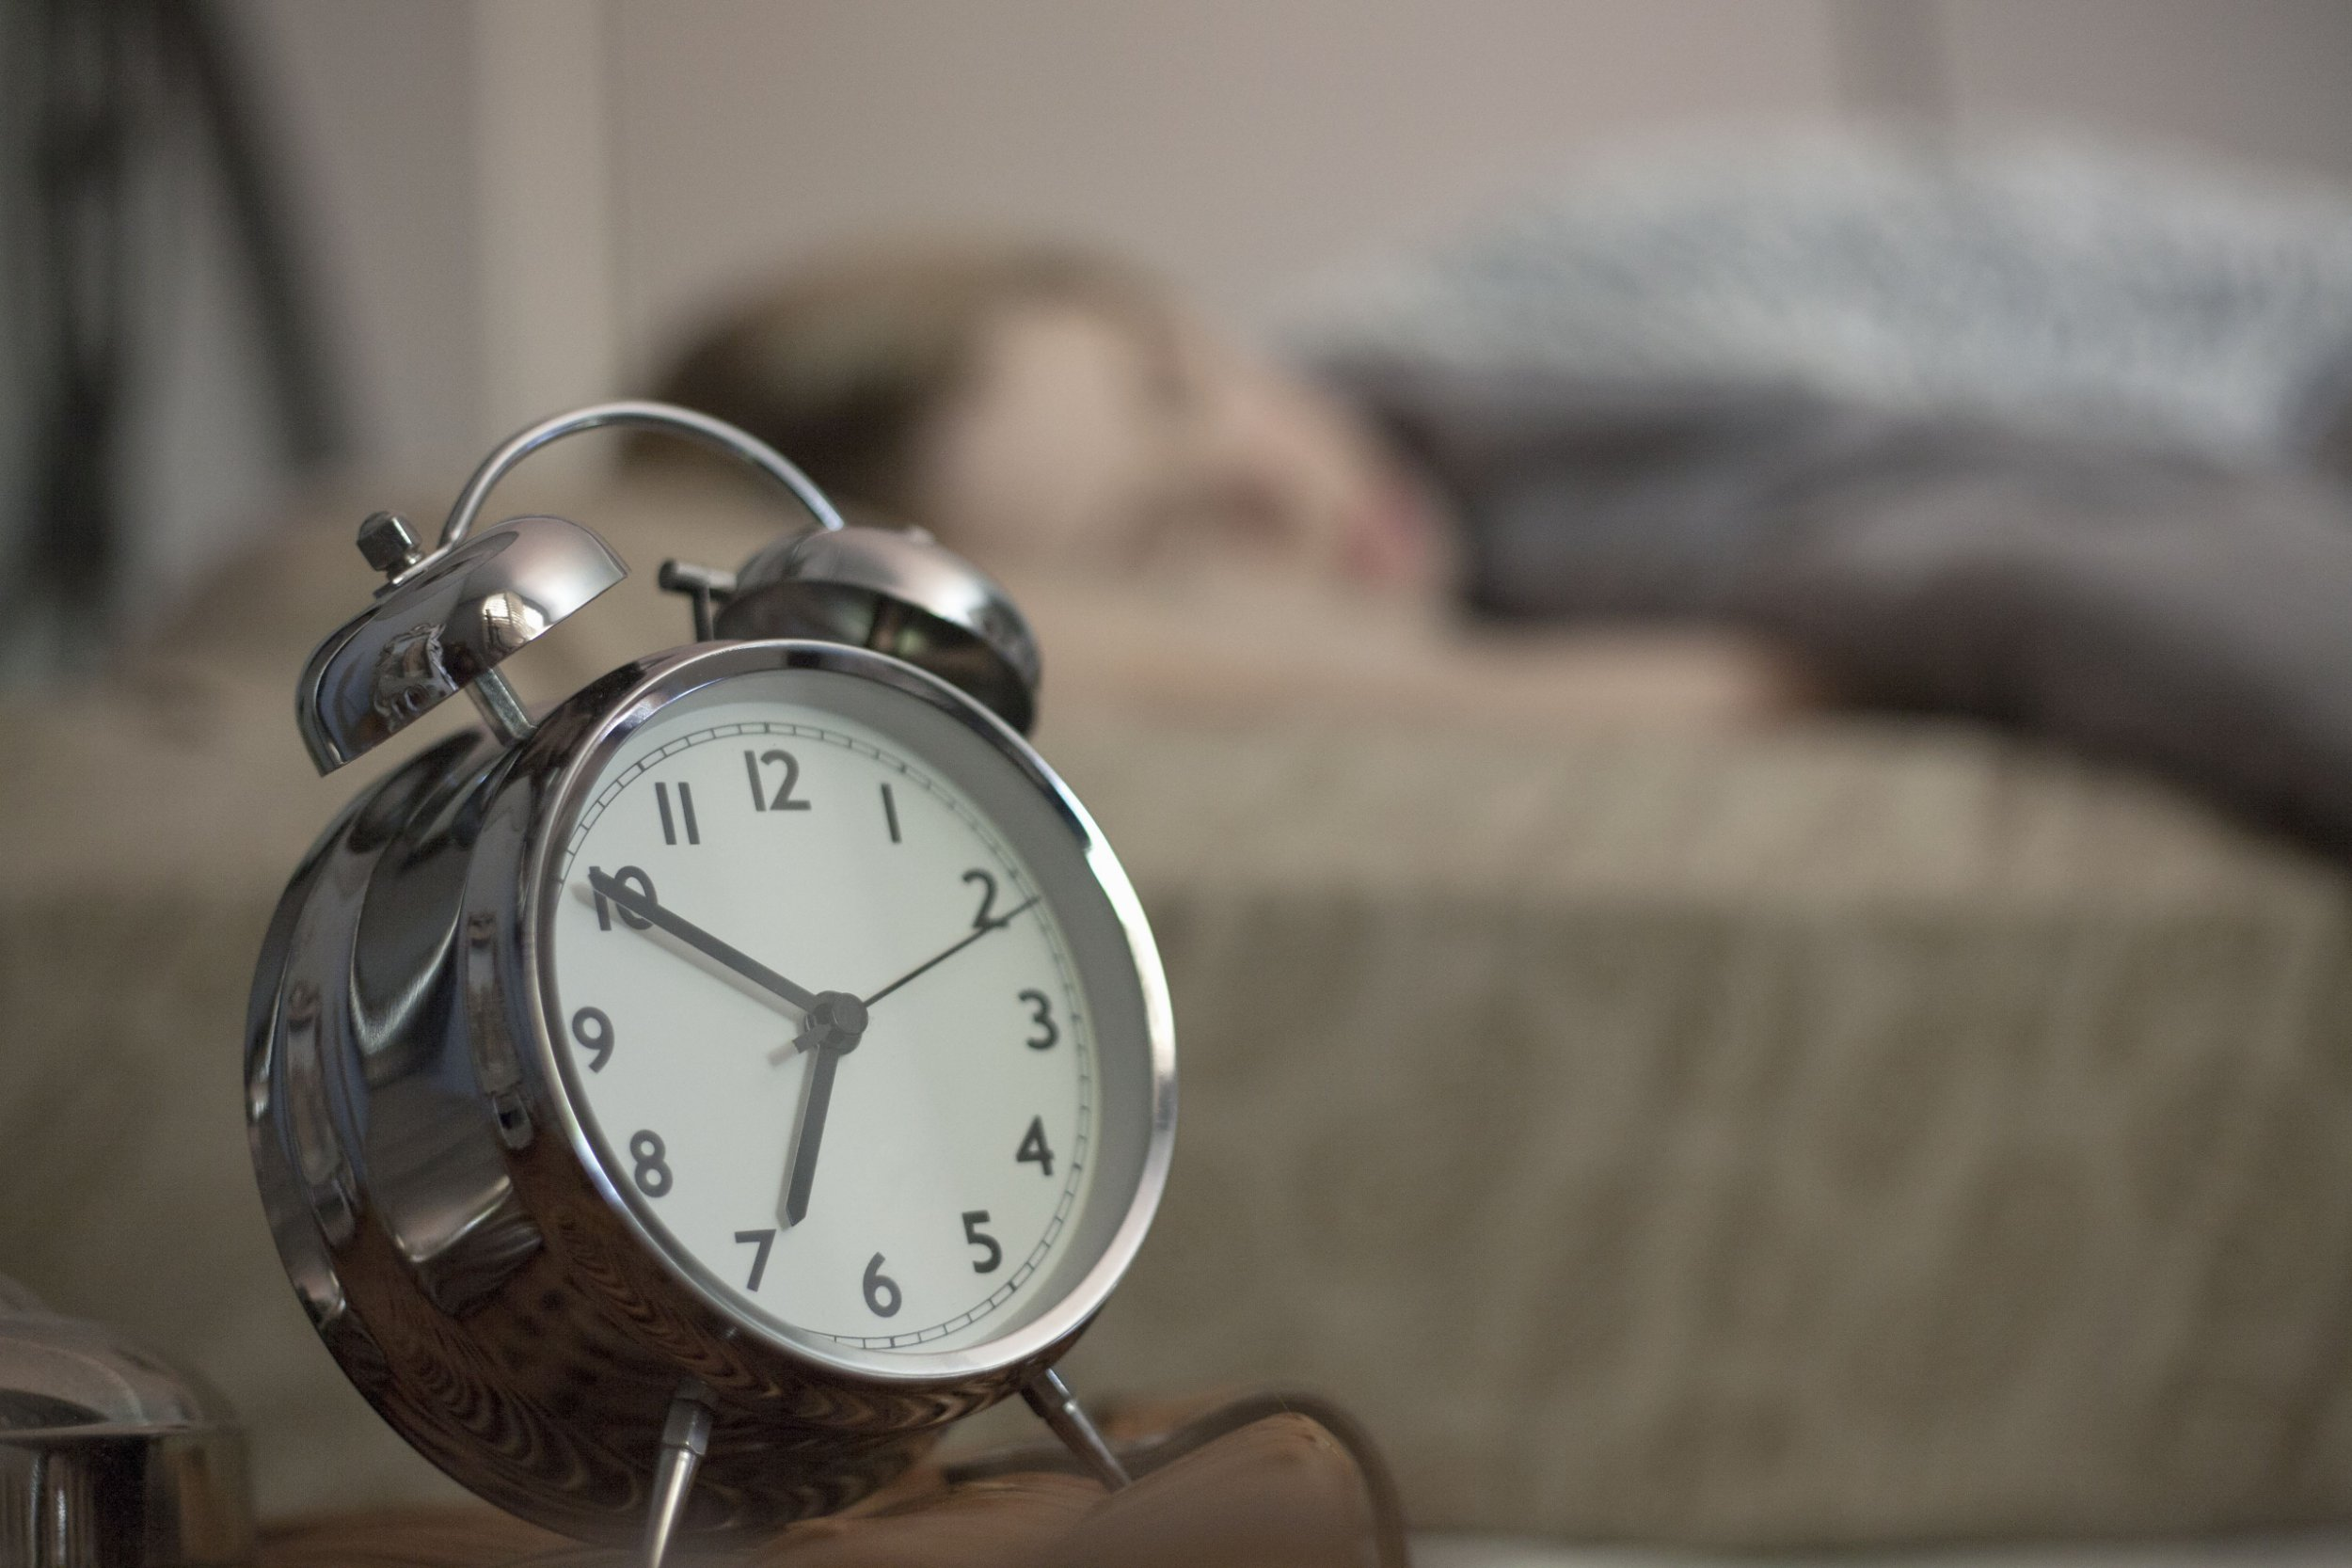 MINIMUM USAGE FEE ?35. Please call Rex Features on 020 7278 7294 with any queries. Mandatory Credit: Photo by Image Source/REX/Shutterstock (4787666a) MODEL RELEASED, Close up of alarm clock, woman in background. VARIOUS